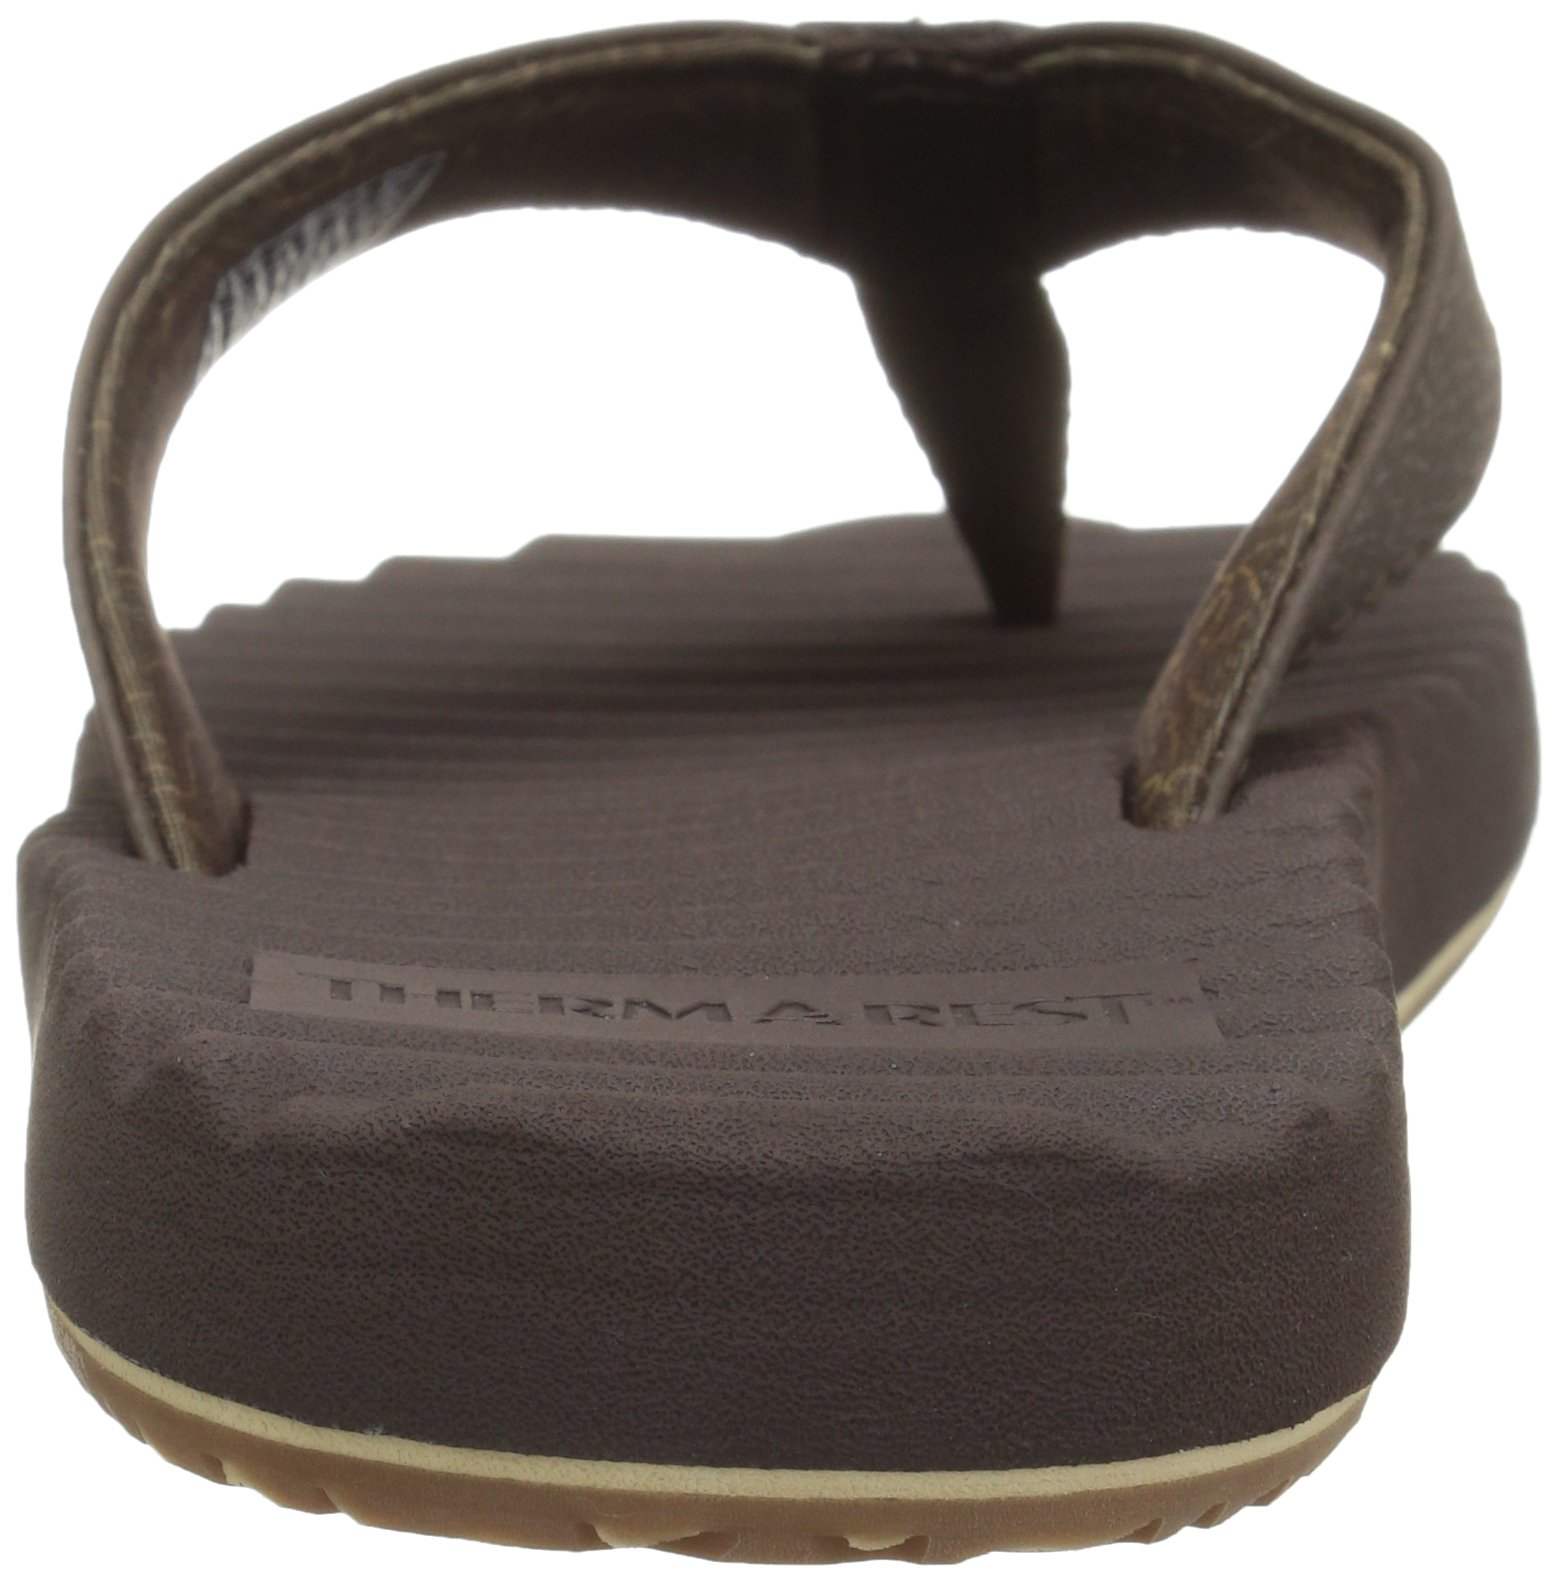 Freewaters Men's Basecamp Therm-a-Rest Flip Flop Sandal, Brown, 10 M US by Freewaters (Image #2)